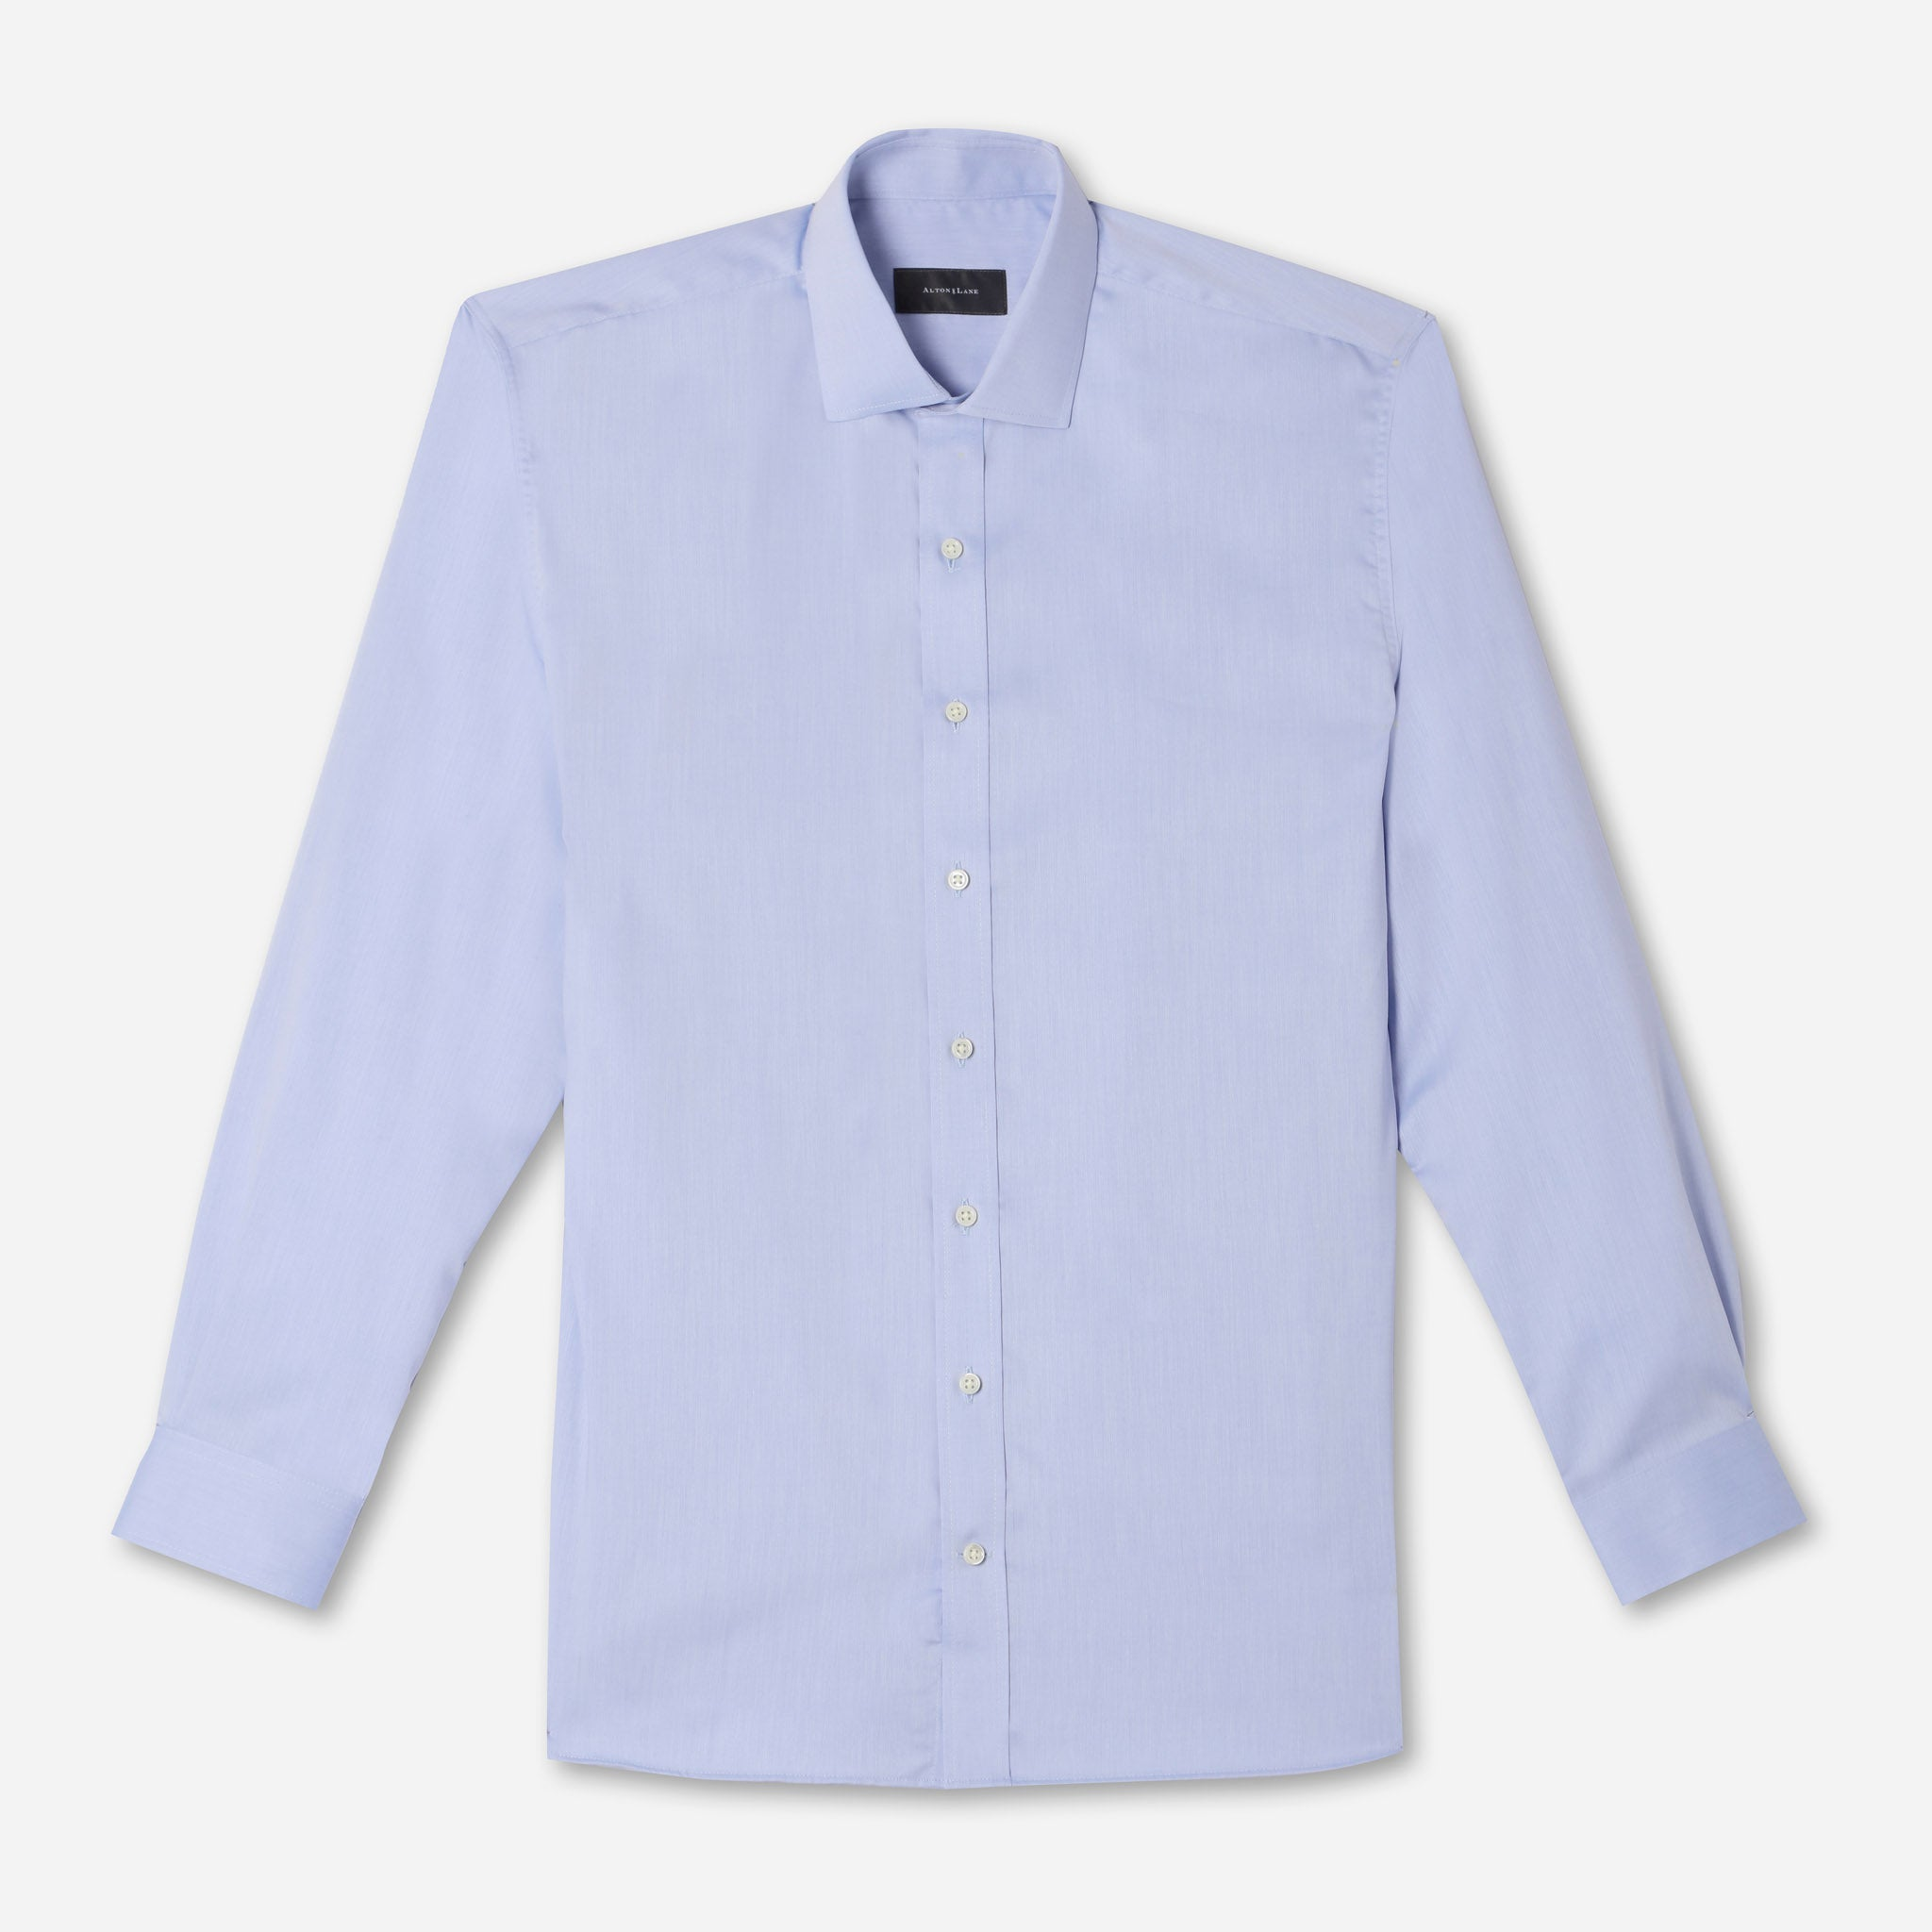 Mason Everyday Premium Shirt in Deep Blue Twill